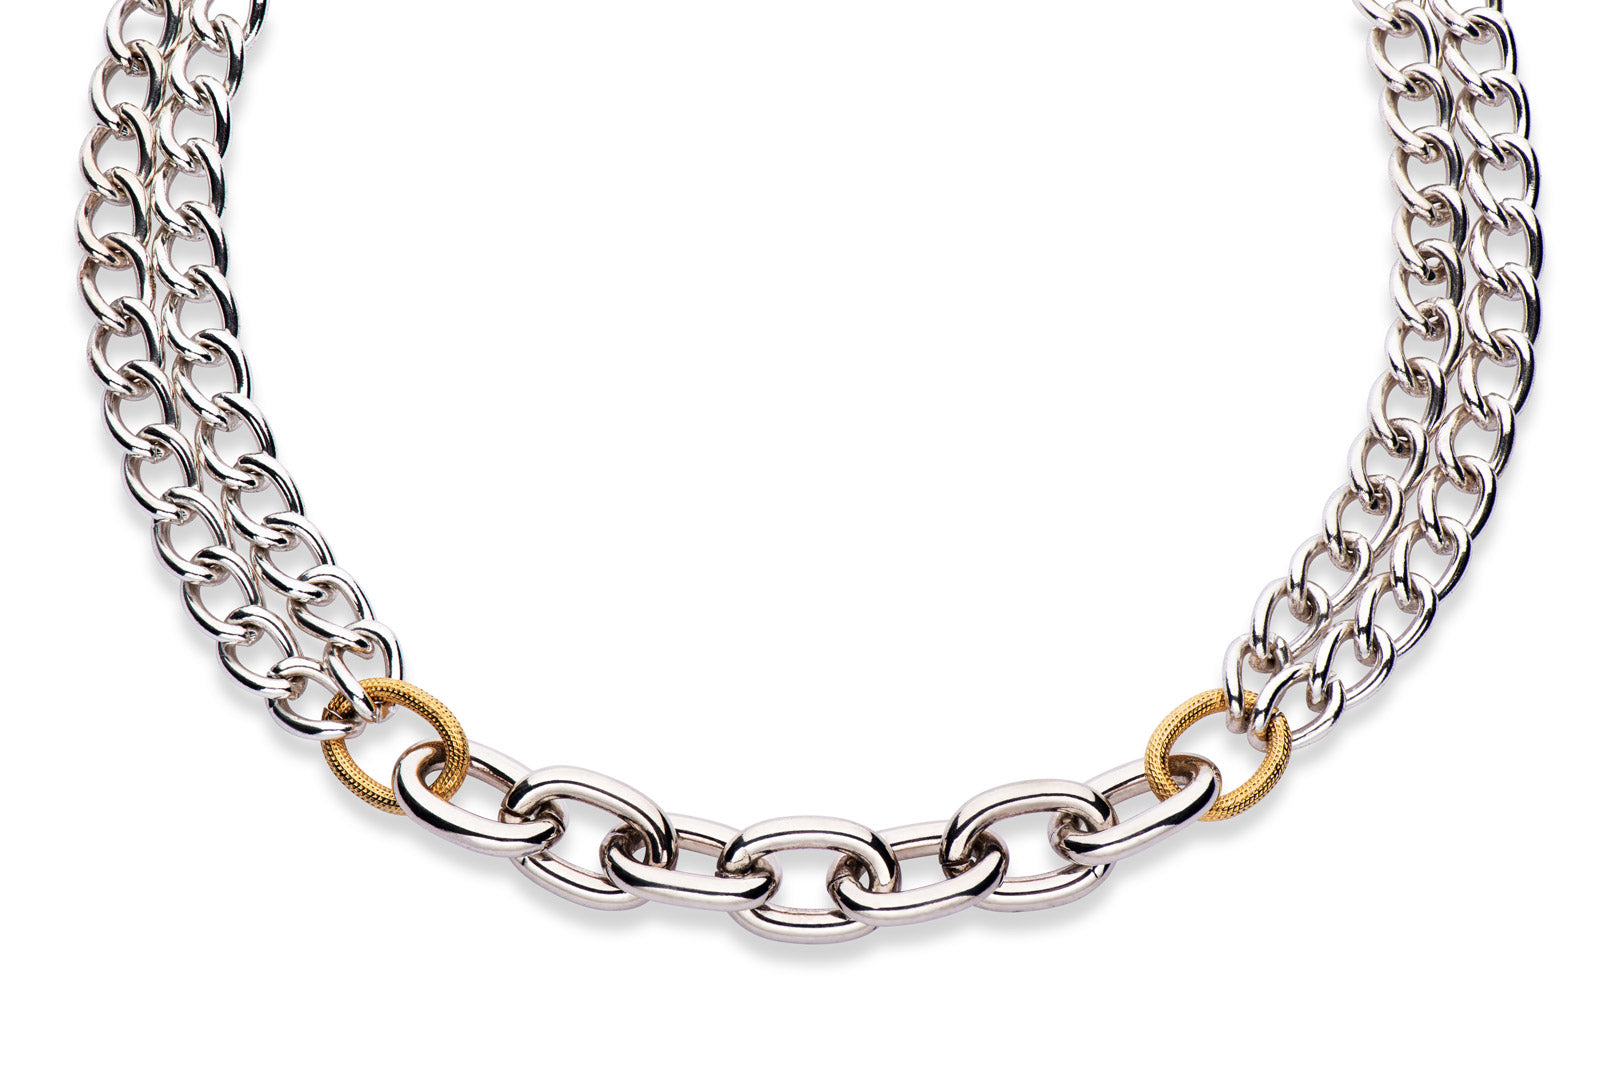 statement necklace made from gold and silver plated chain